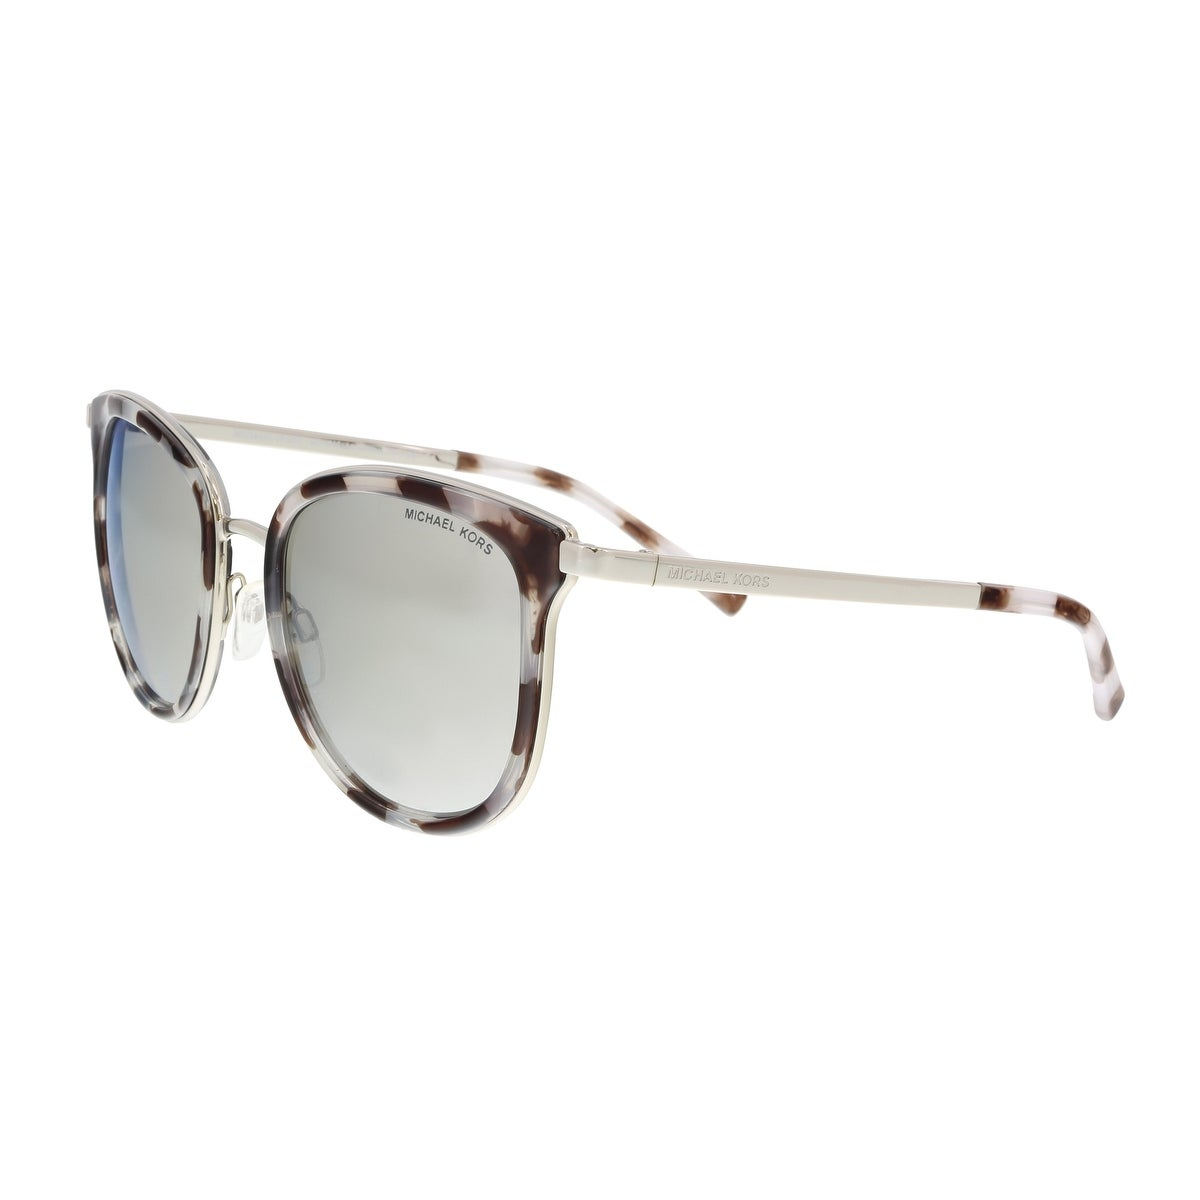 16db8562c372 Michael Kors Sunglasses | Shop our Best Clothing & Shoes Deals Online at  Overstock